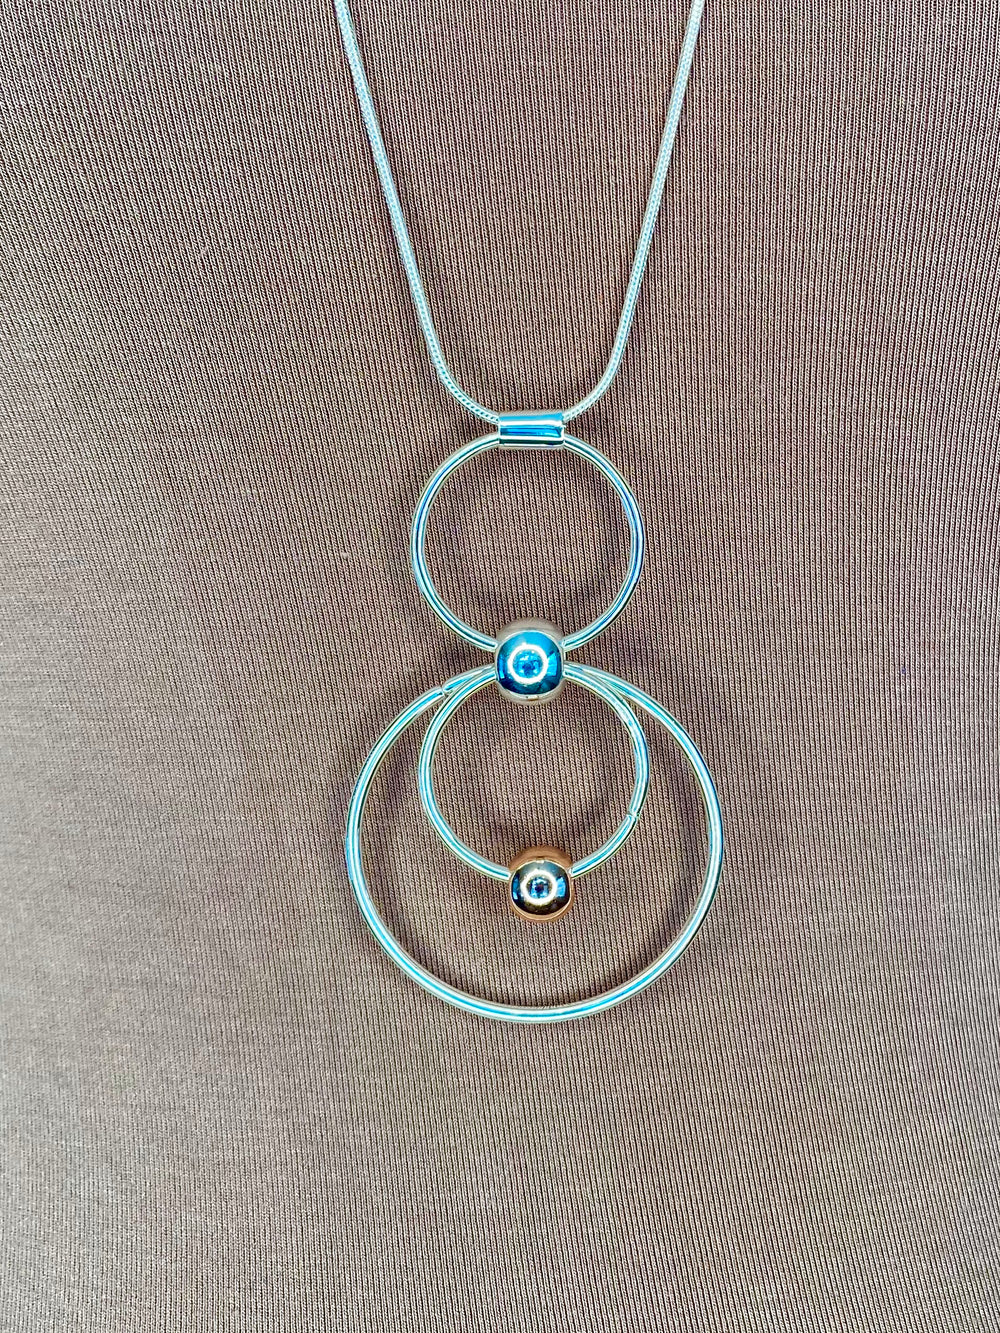 NECKLACE - MIXED METAL FIGURE 8